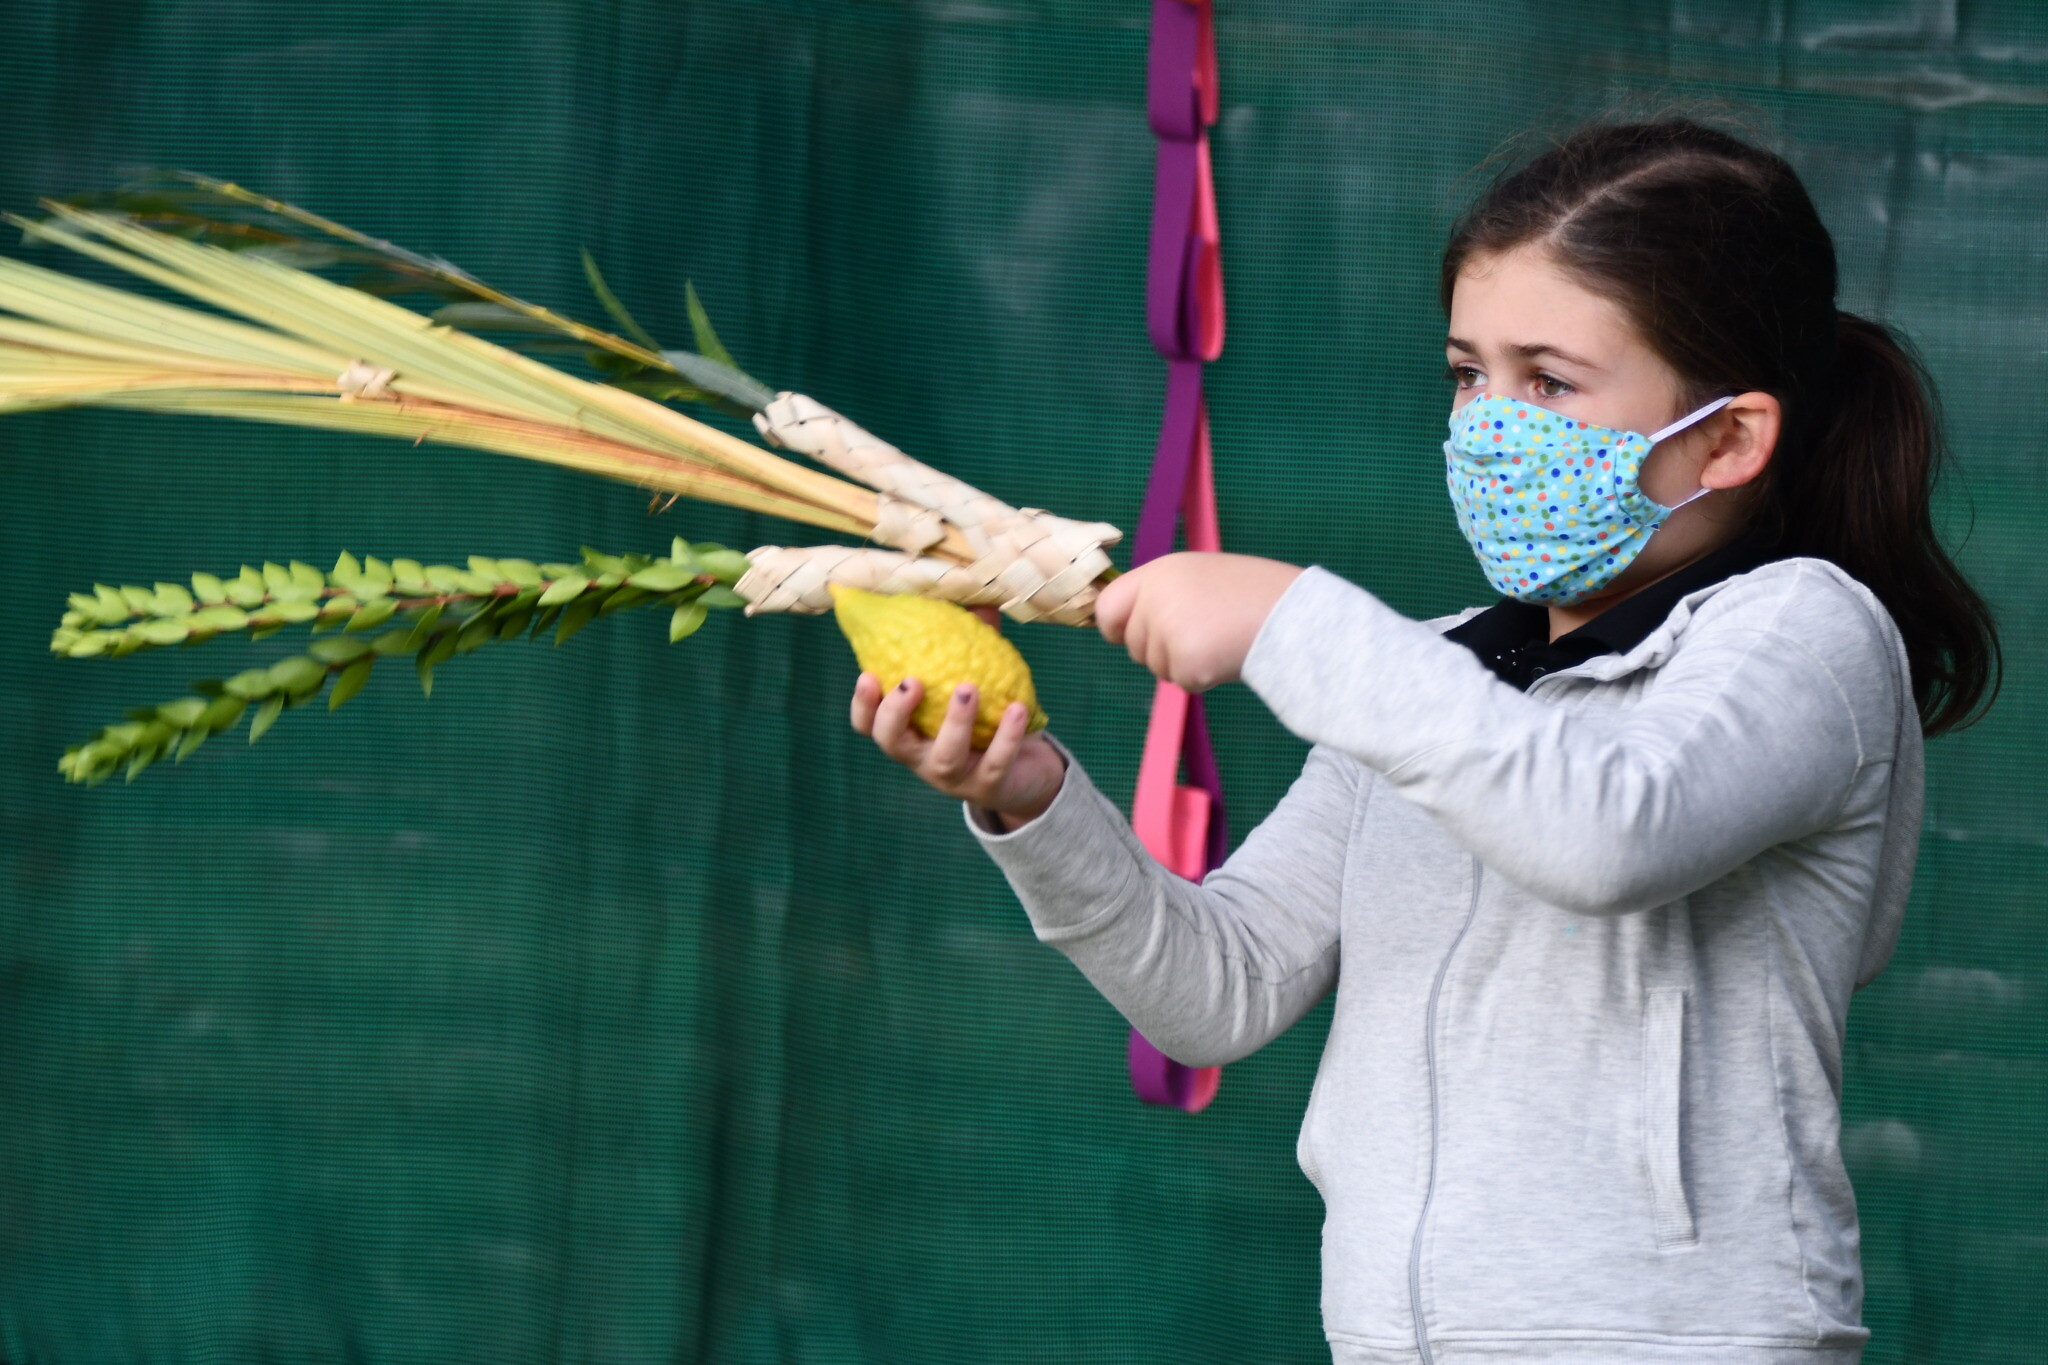 CDS first grader Tatum Baron shakes a lulav and etrog. Photo courtesy of Community Day School